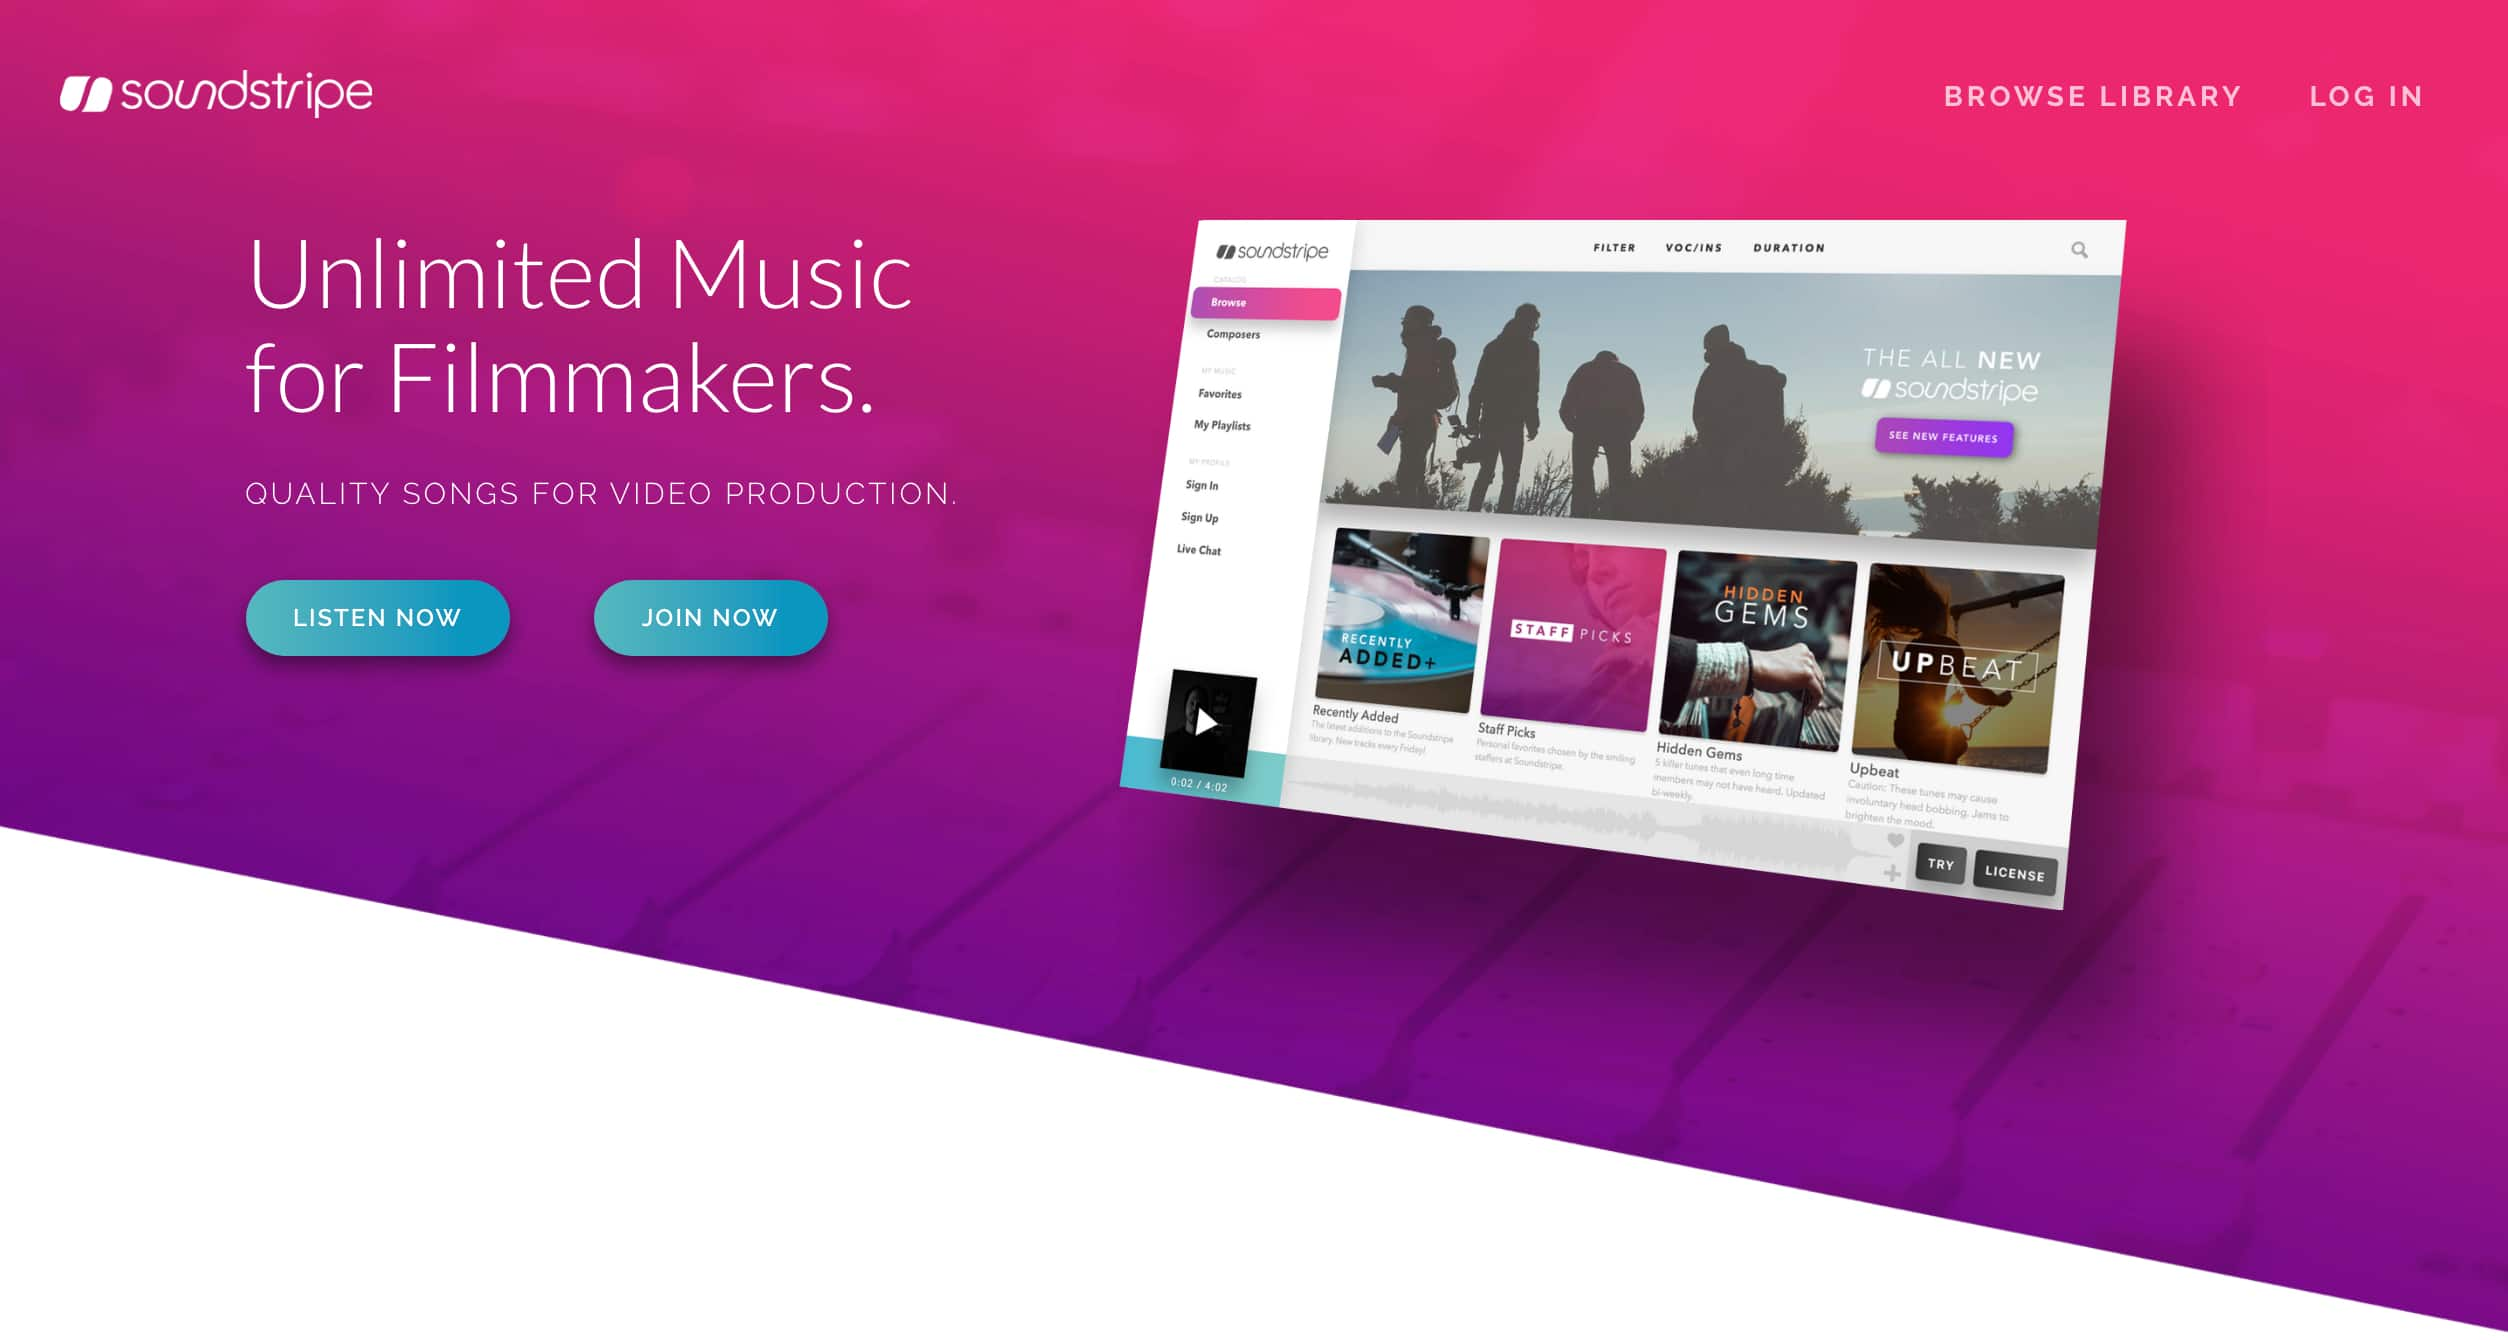 The homepage of Soundstripe's royalty free music service.